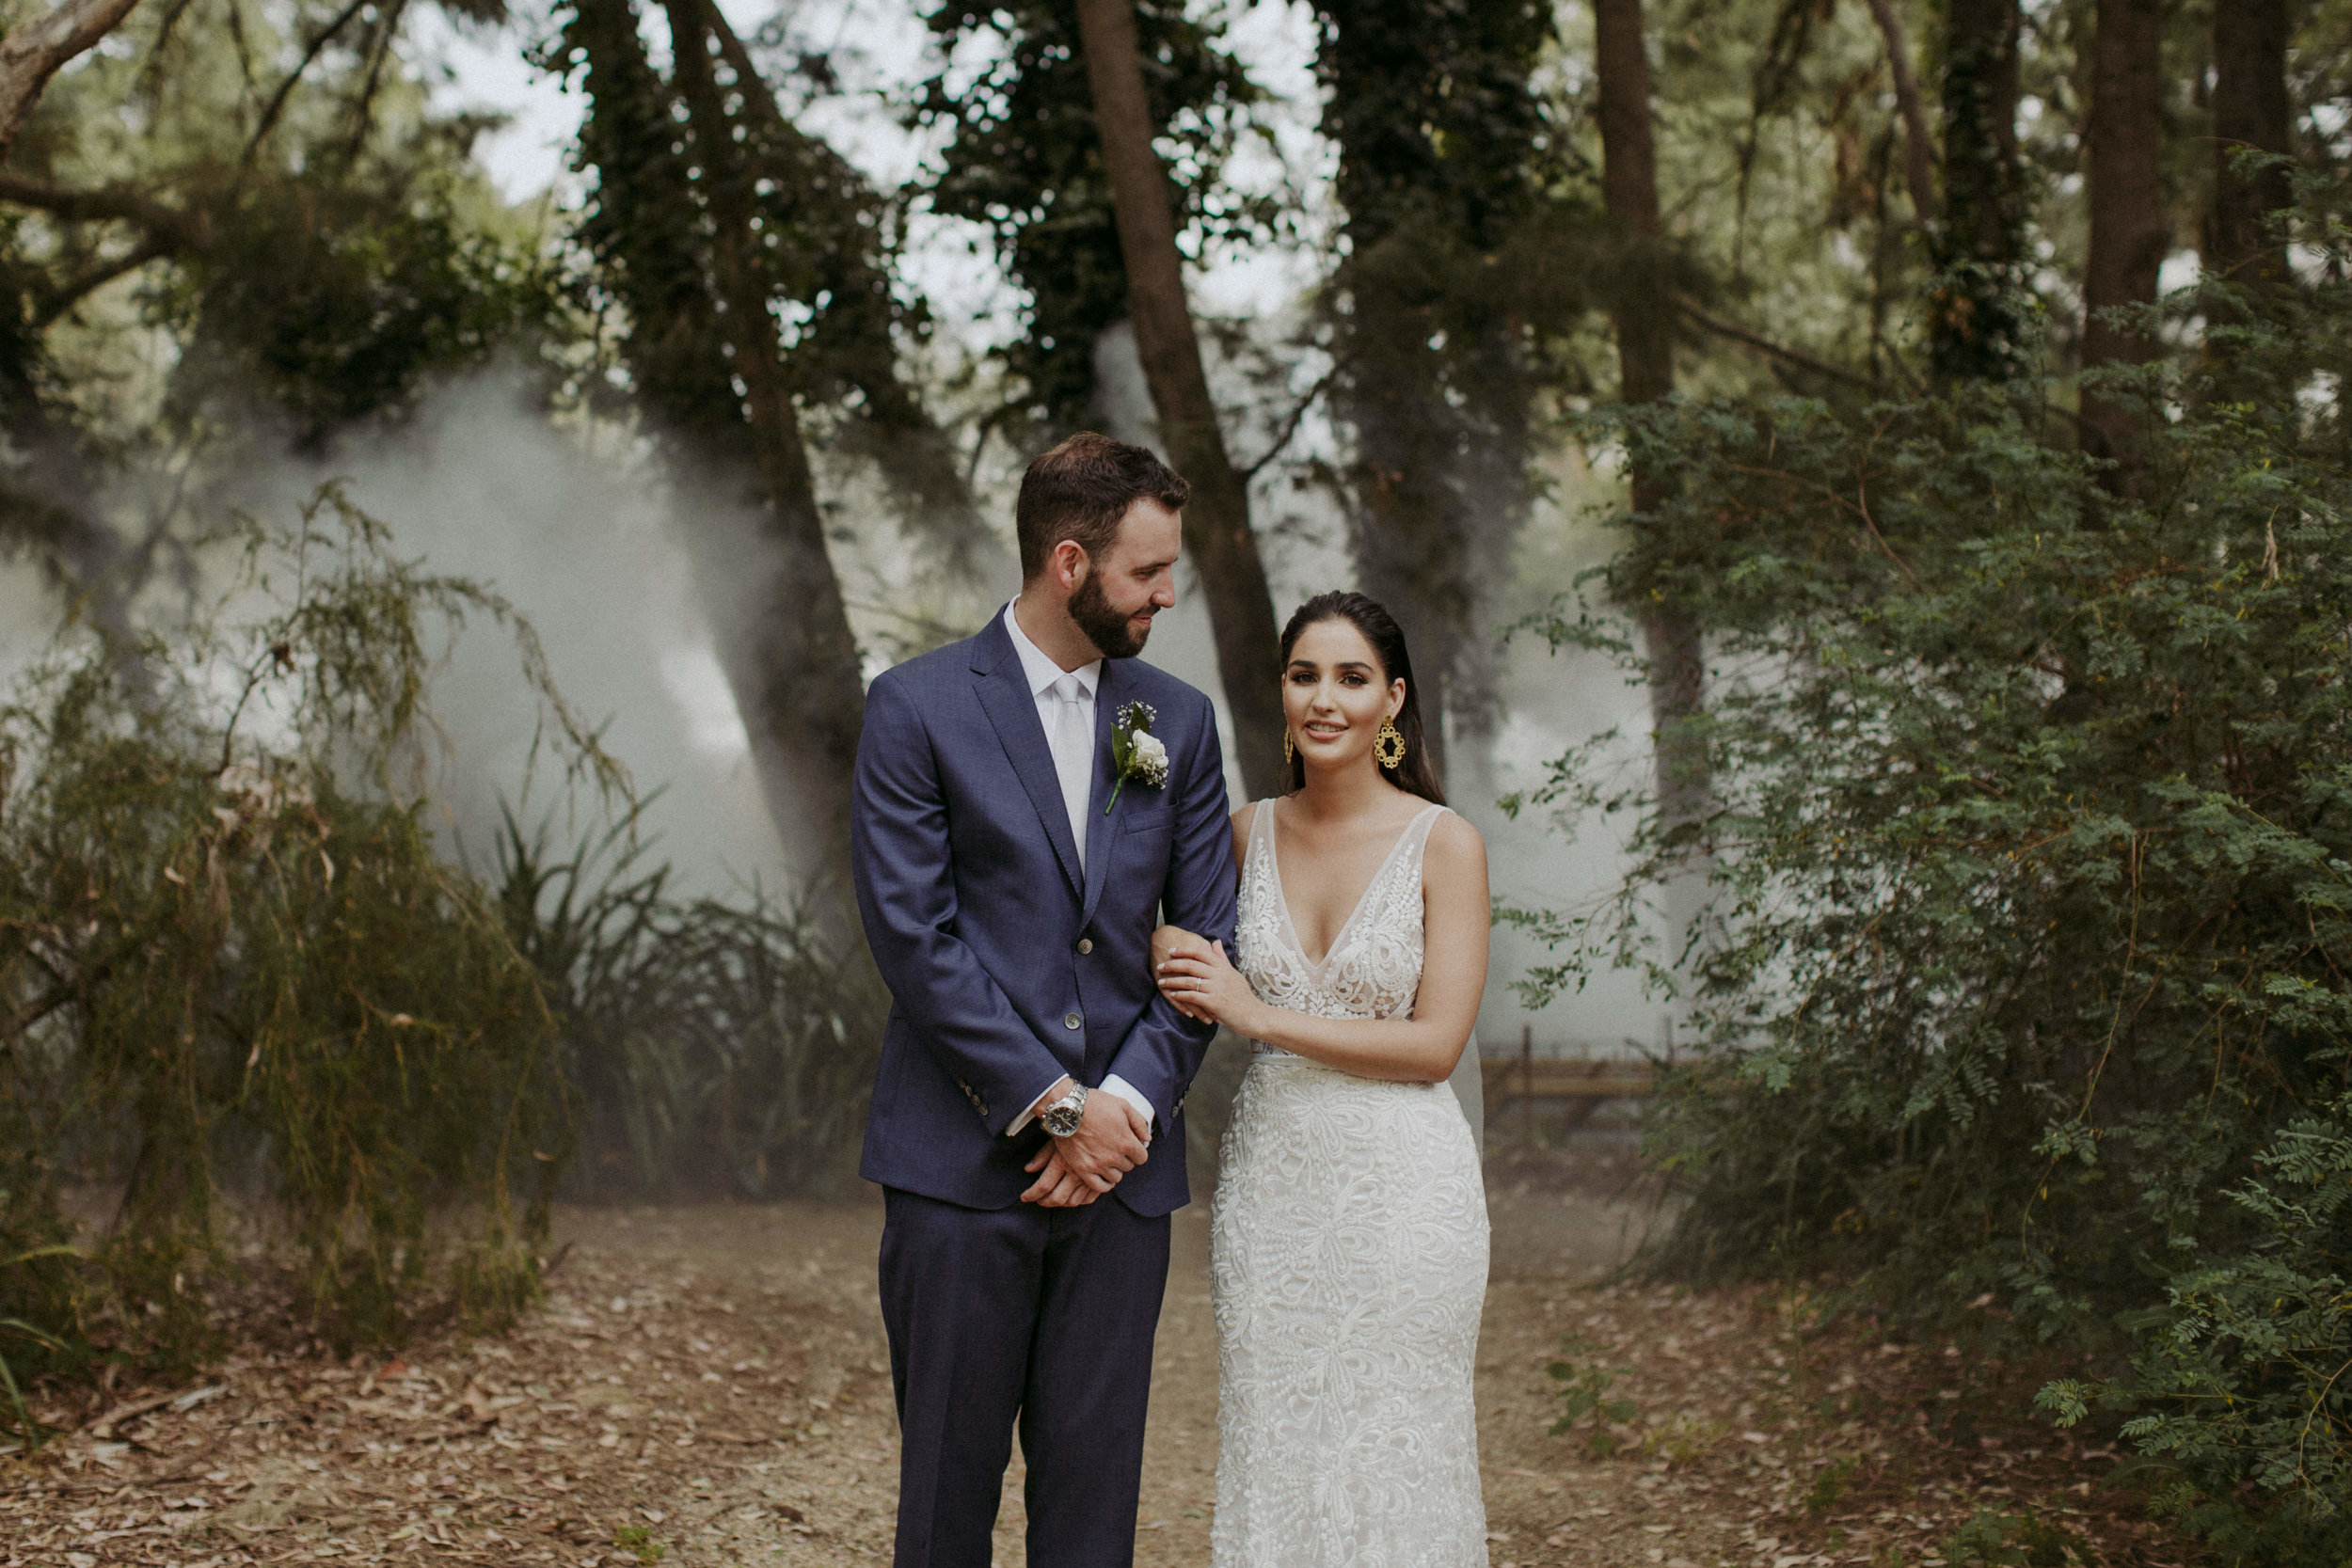 """What My Clients Say - """"Oh my goodness Emma, Stacey and I are so delighted with our photos… They're such a great reflection of our amazing day and are absolutely beautiful. We loved your relaxed manner and your style… We'll cherish our photos for years to come.""""- Mark and Stacey"""